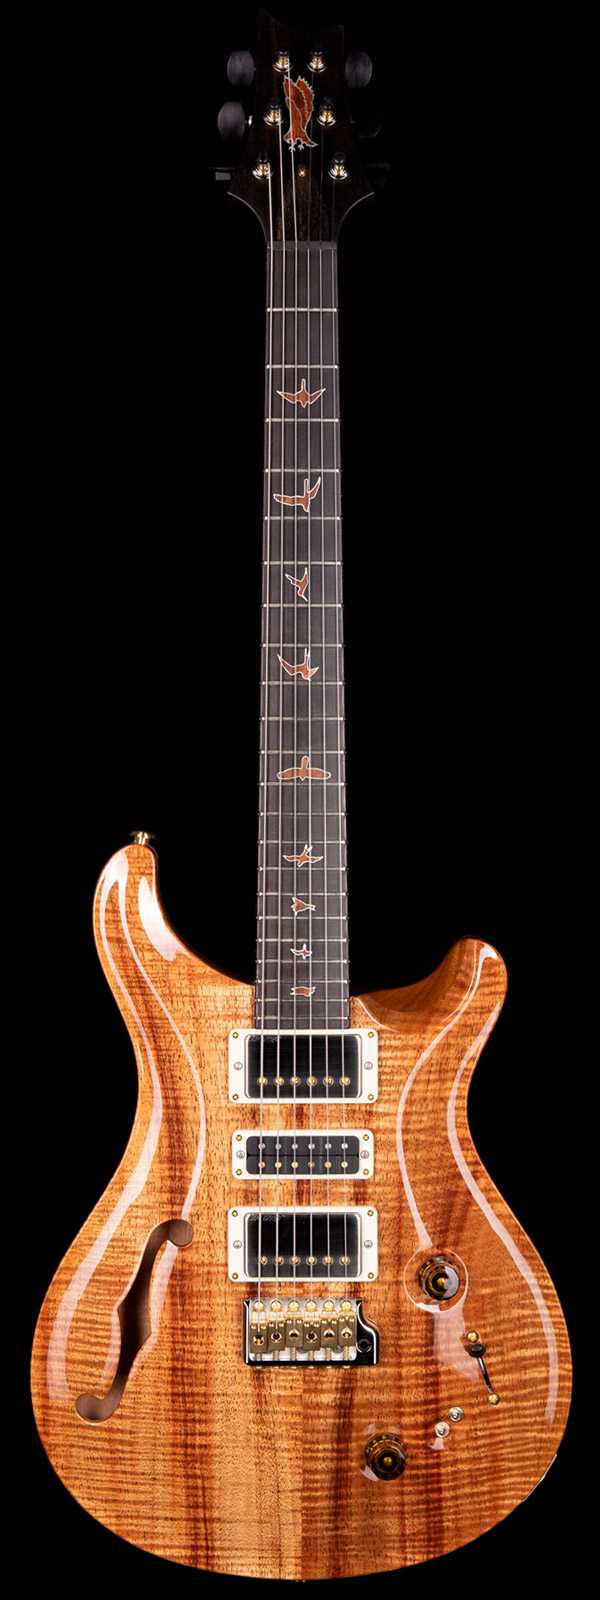 PRS Private Stock 8521 Special Semi-Hollow w/ F-Hole Koa Top Ebony Fretboard Natural Finish